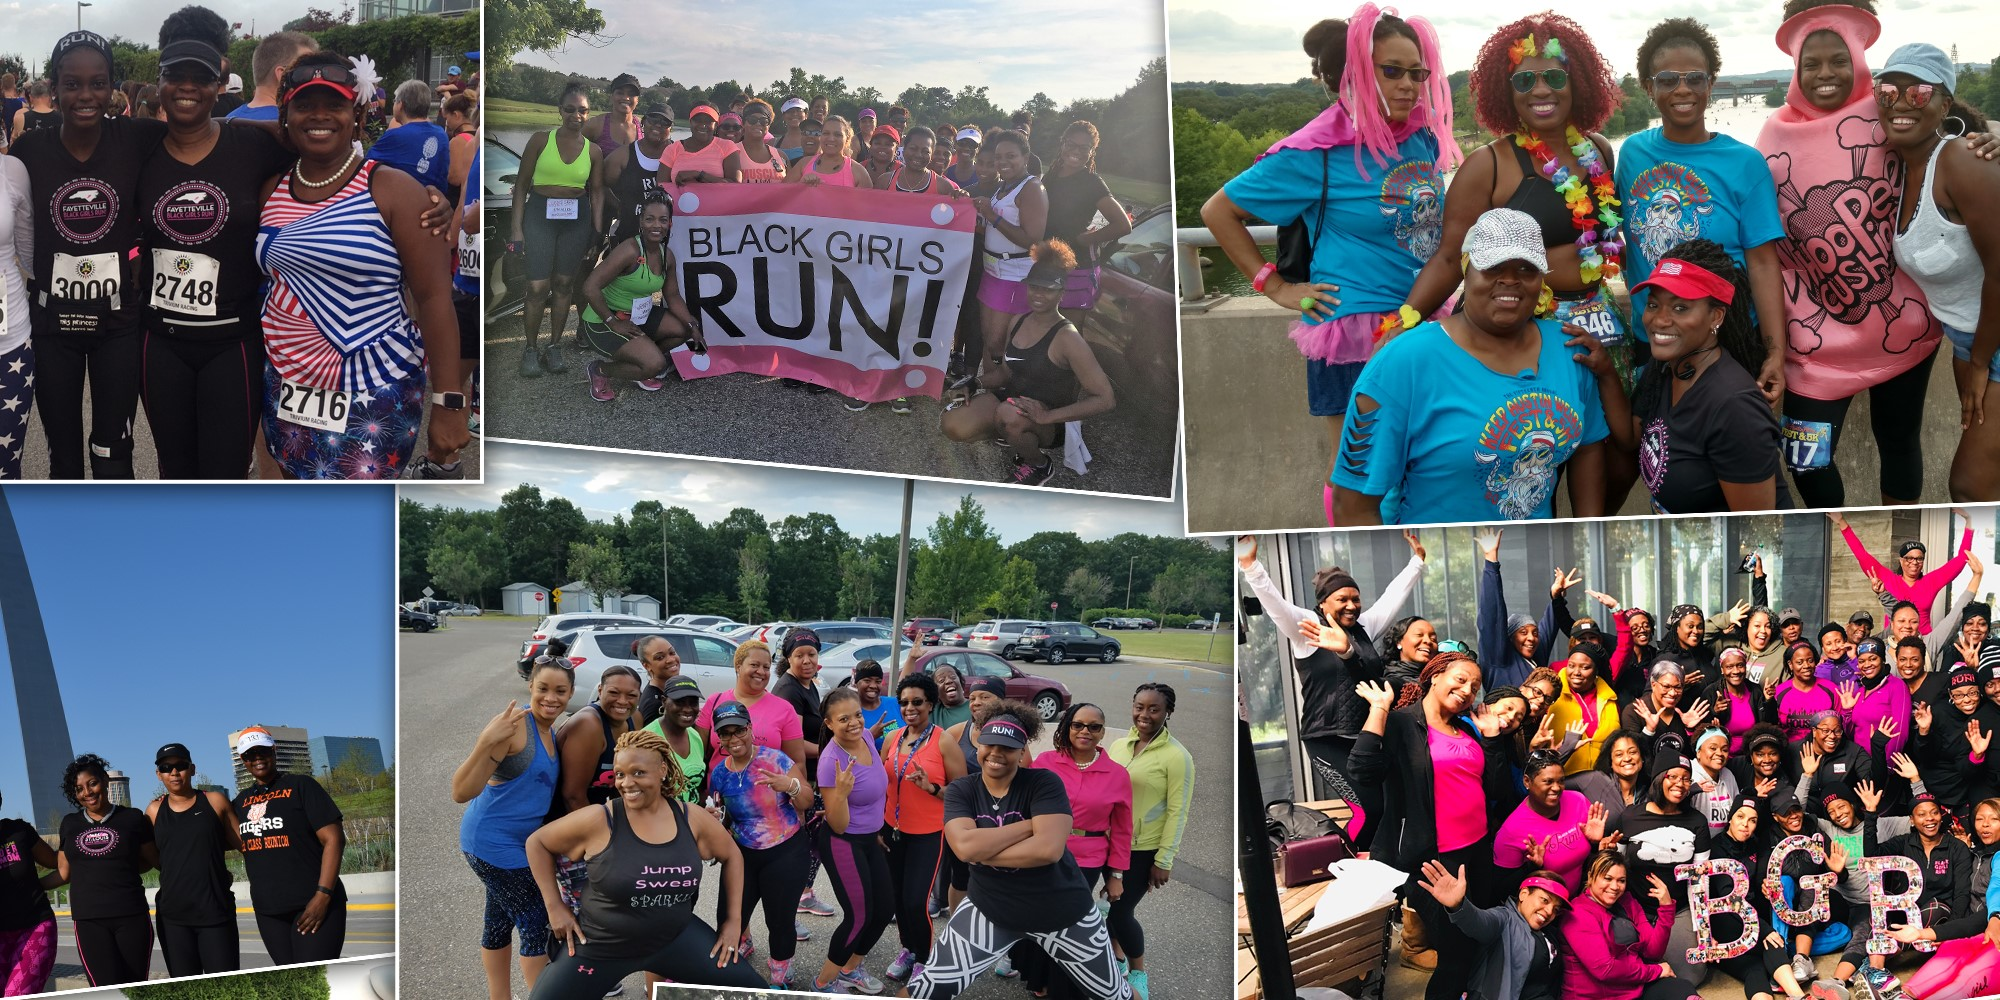 A collage of six group images featuring Black women in running gear before or after going for runs.